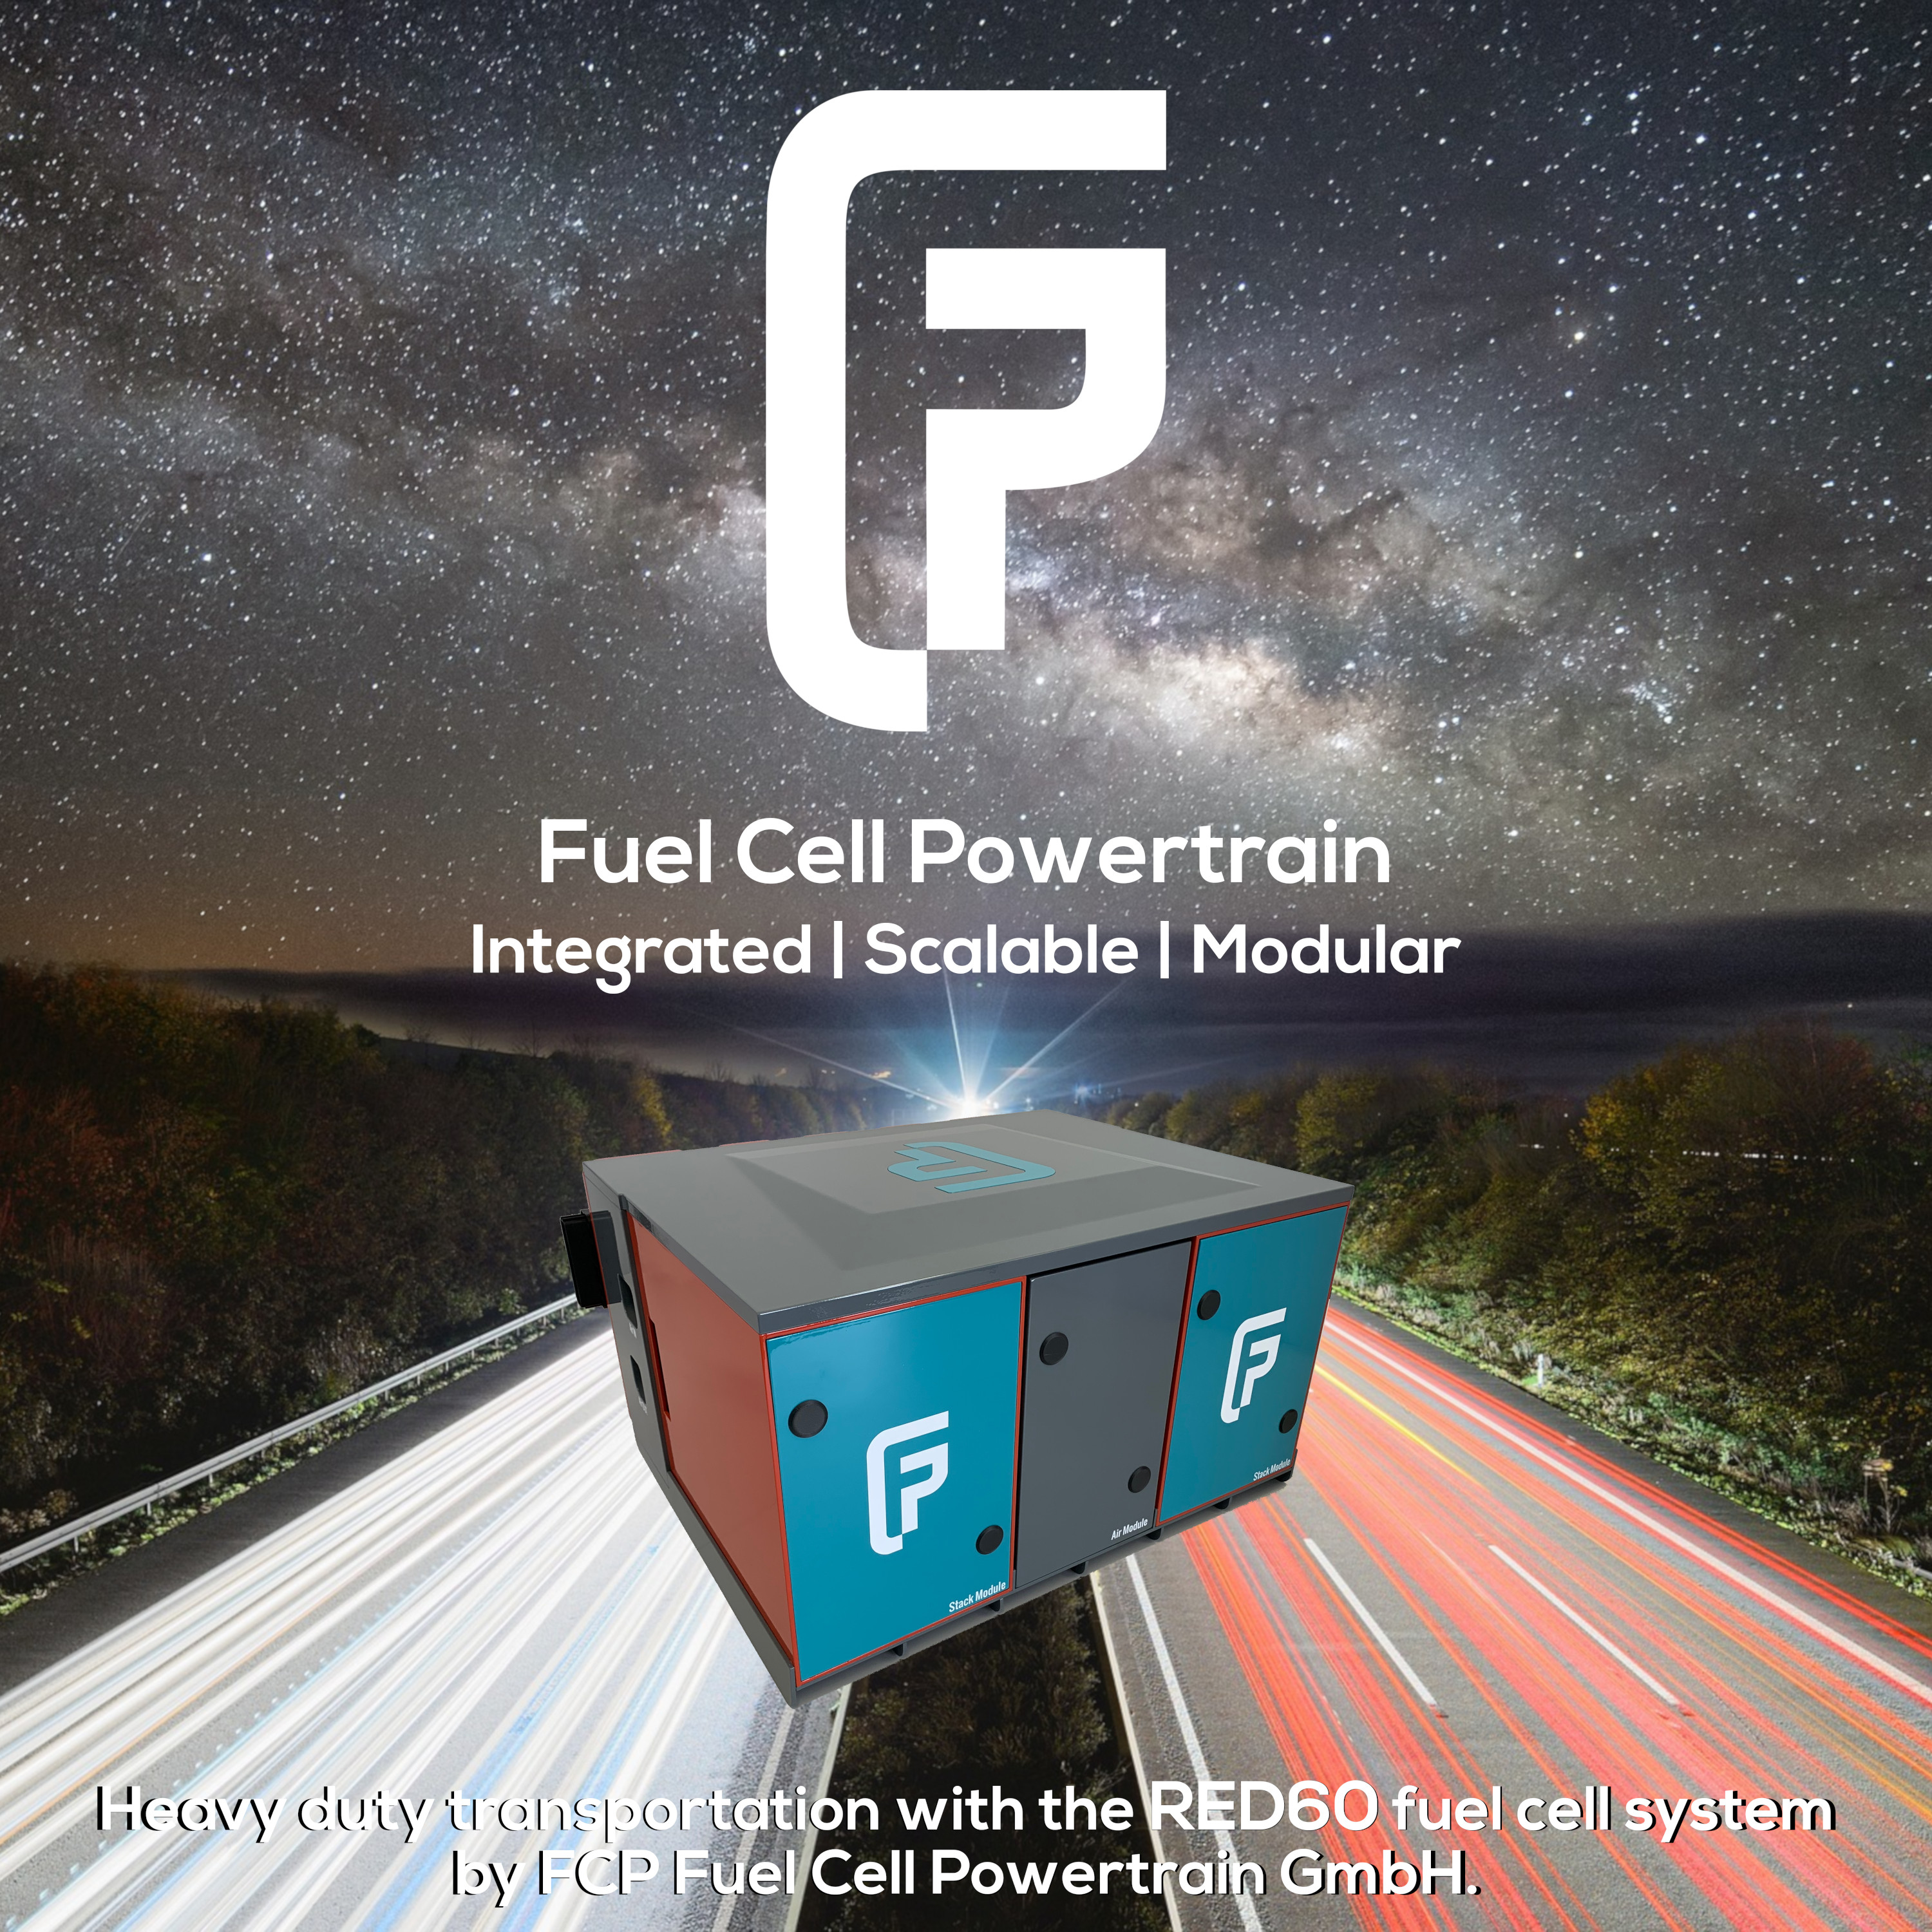 FCP Fuel Cell Powertrain GmbH – Product Image 2